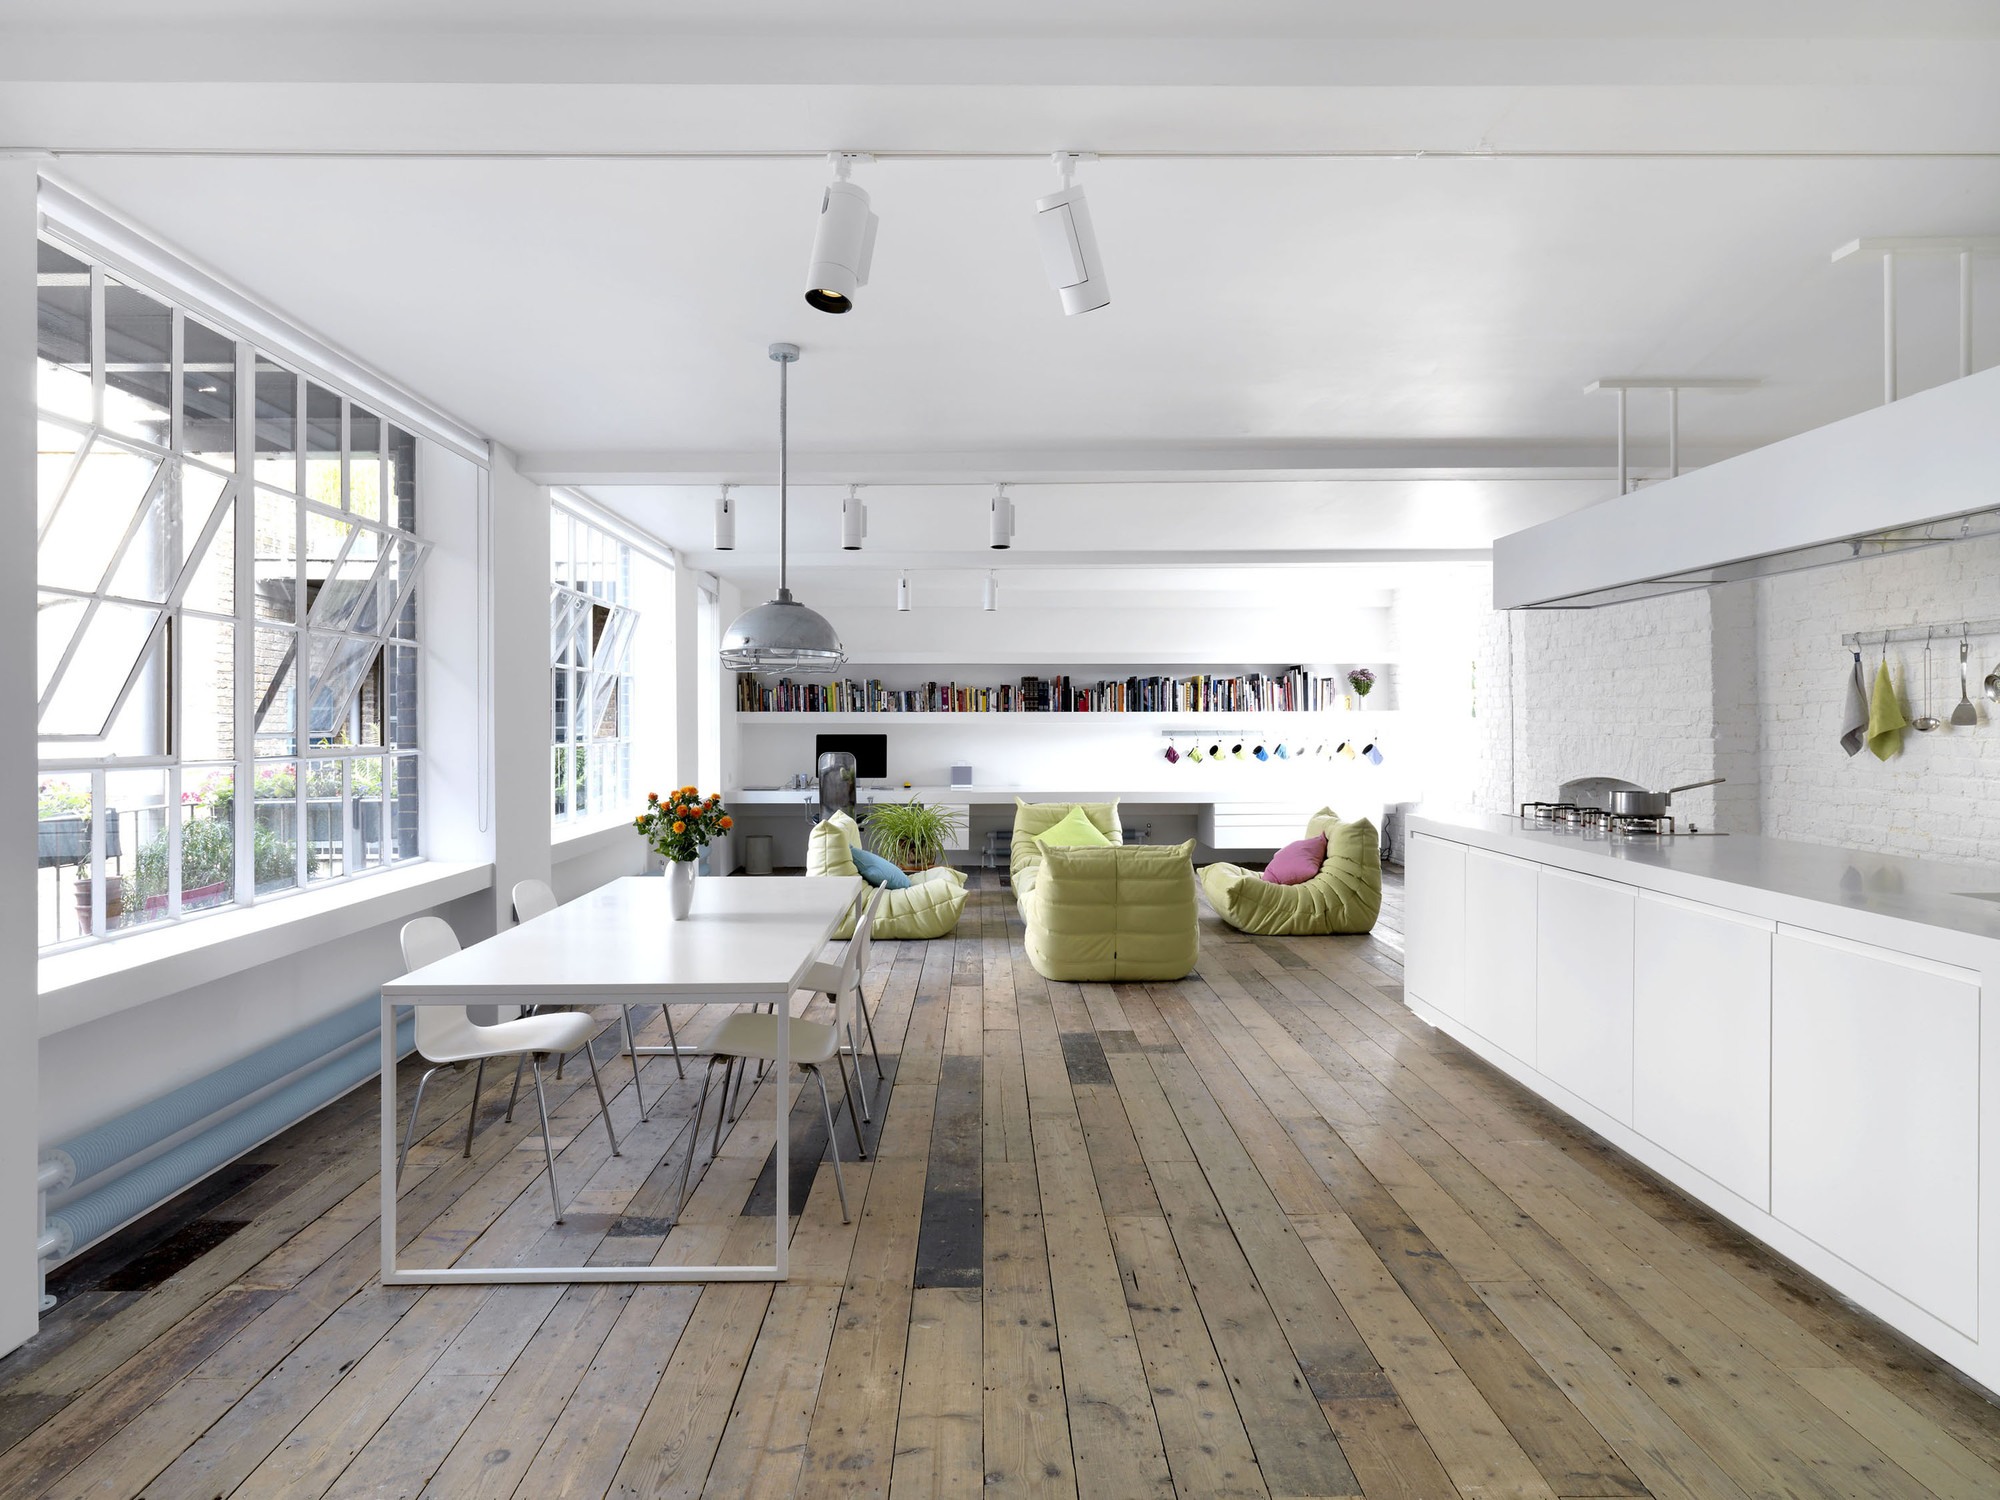 Apartment Einrichtung bermondsey warehouse loft apartment form design architecture